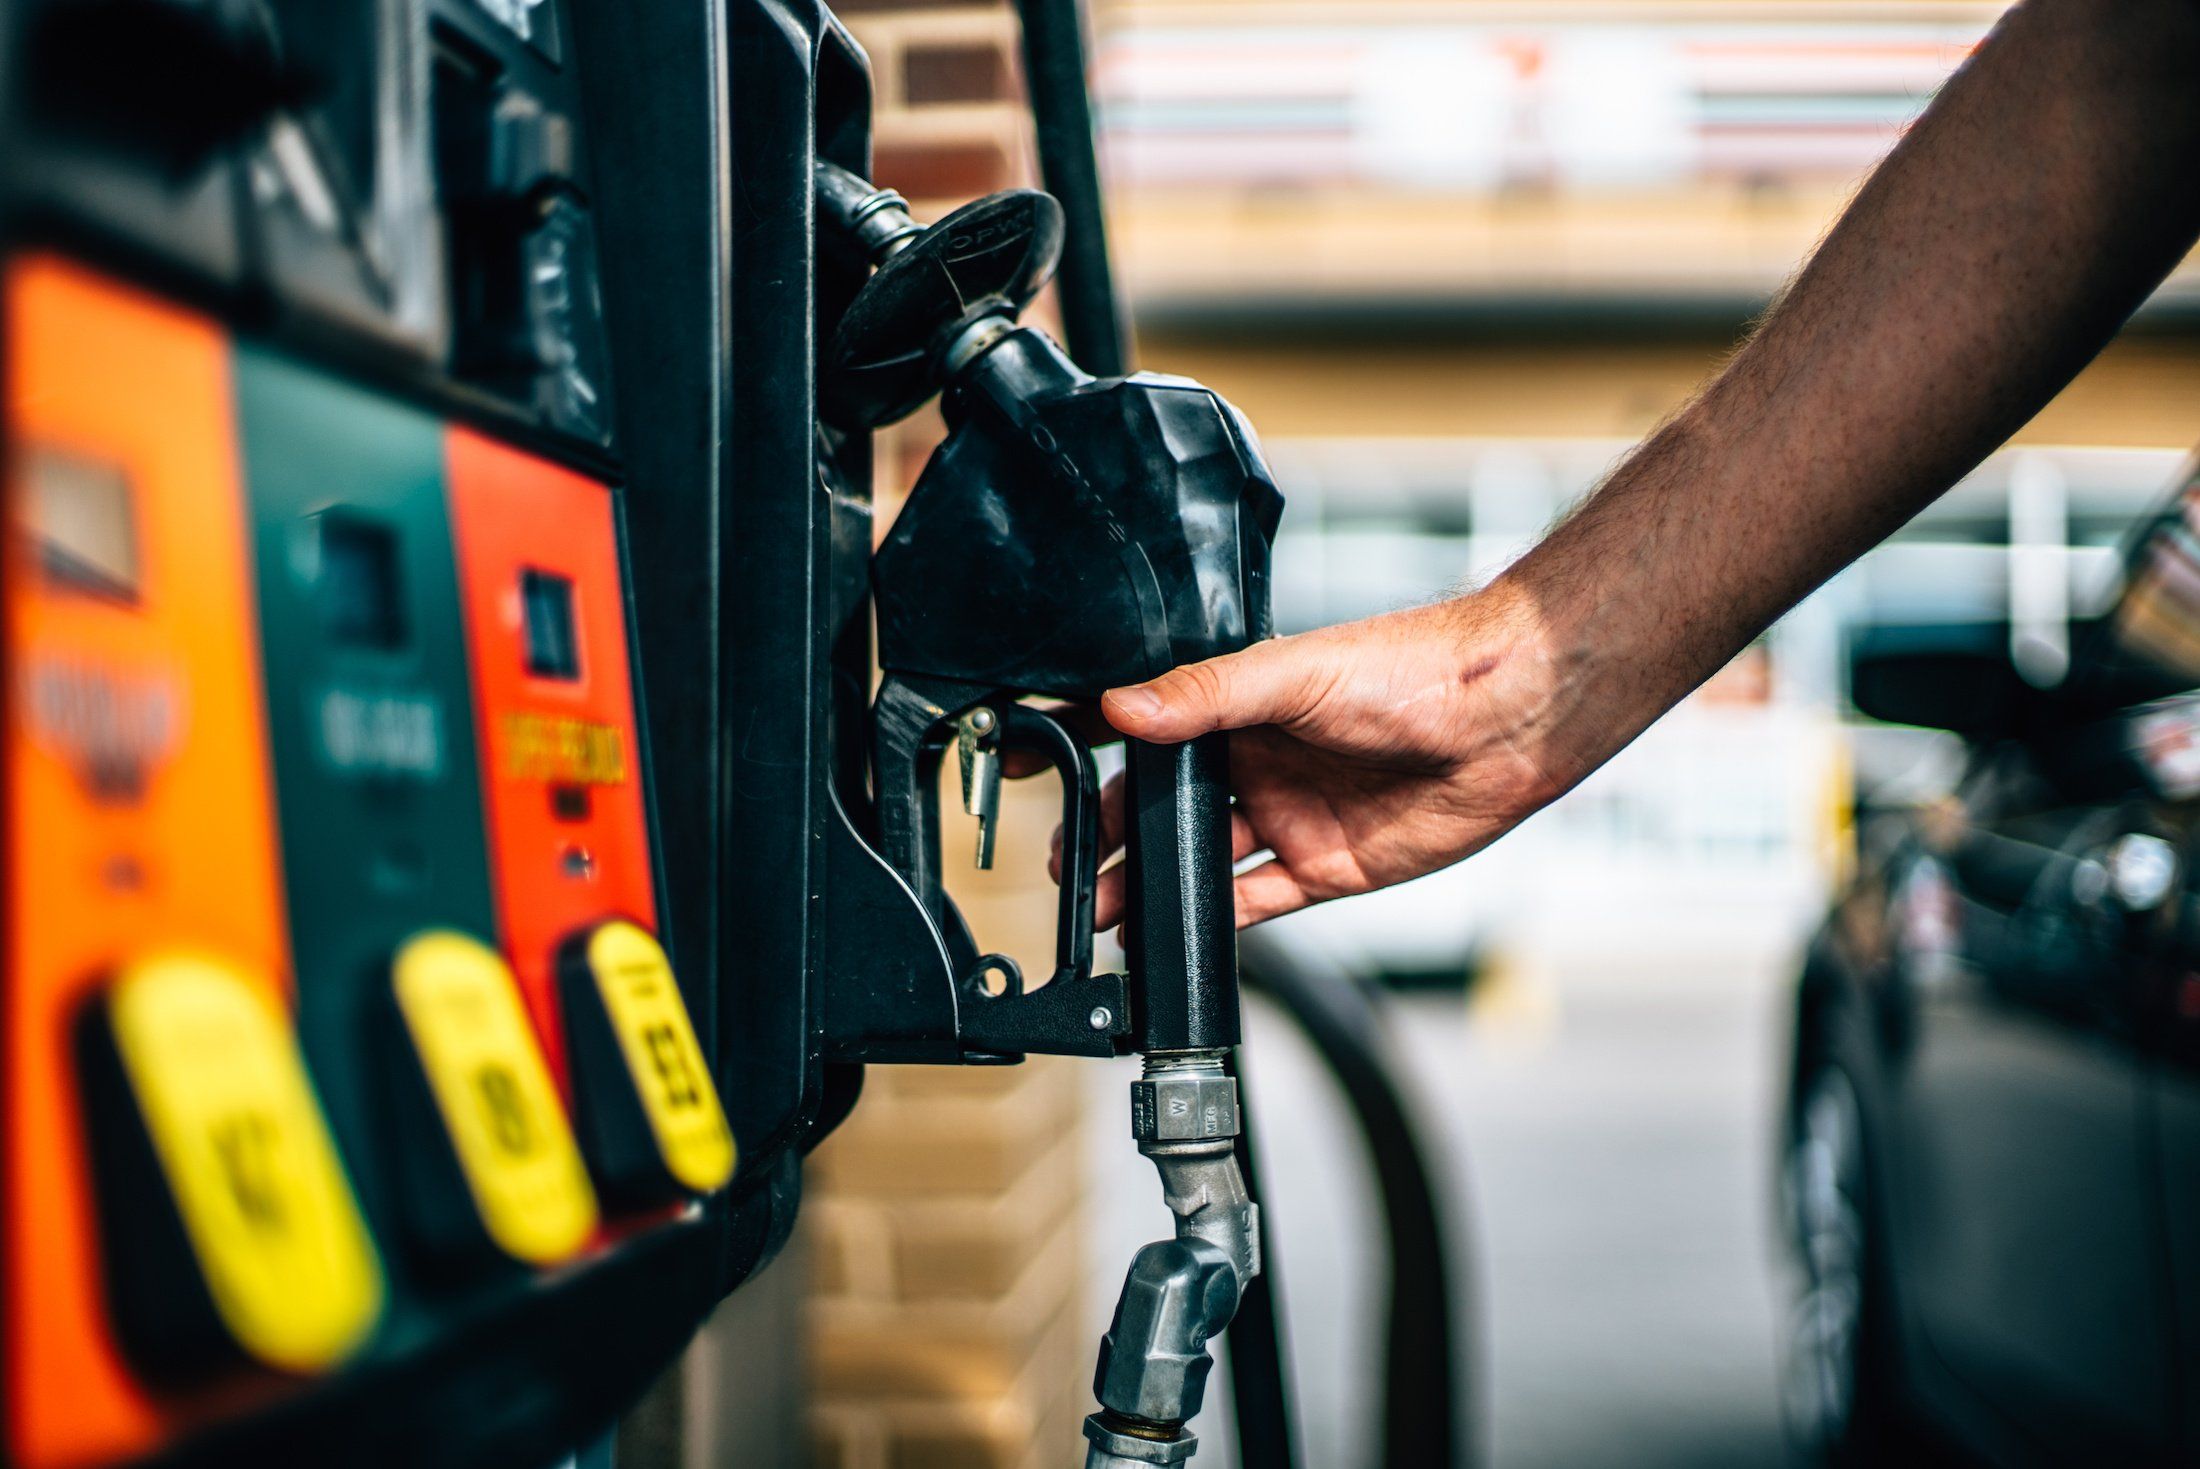 Local filling station in northern areas raise petroleum prices to 750 rupees due to tourist influx